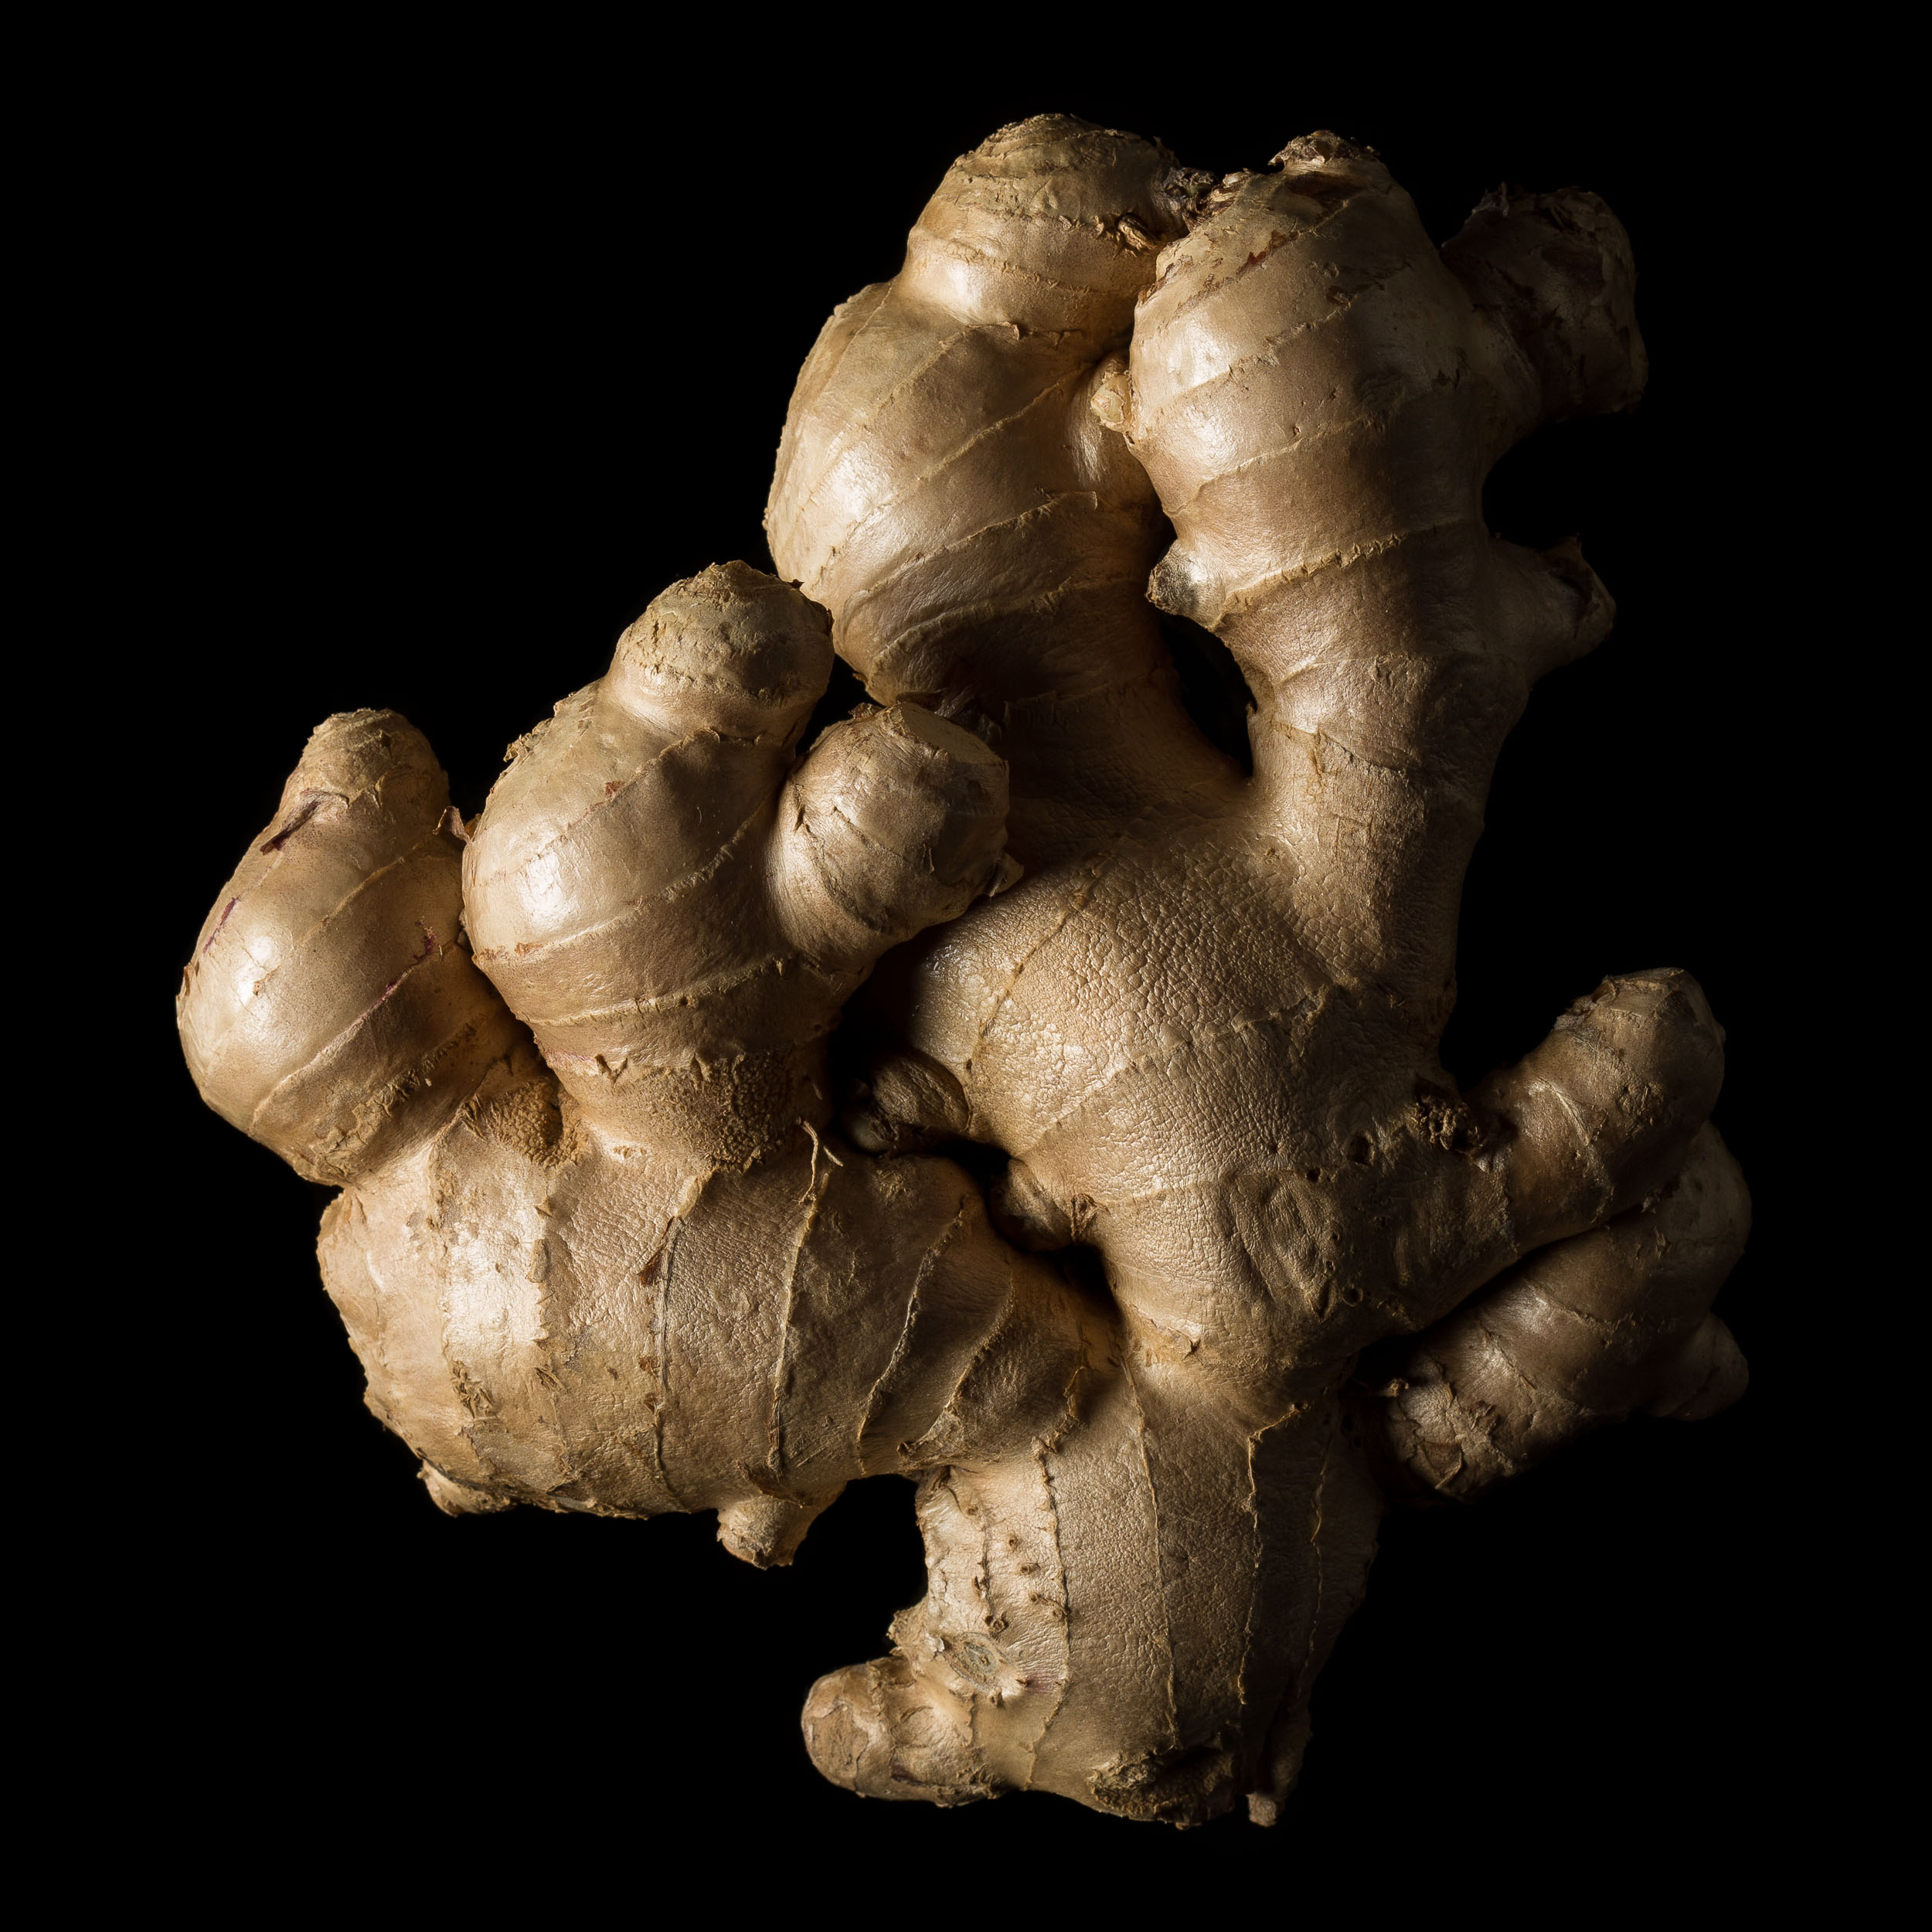 Artistic black and white photo of ginger root